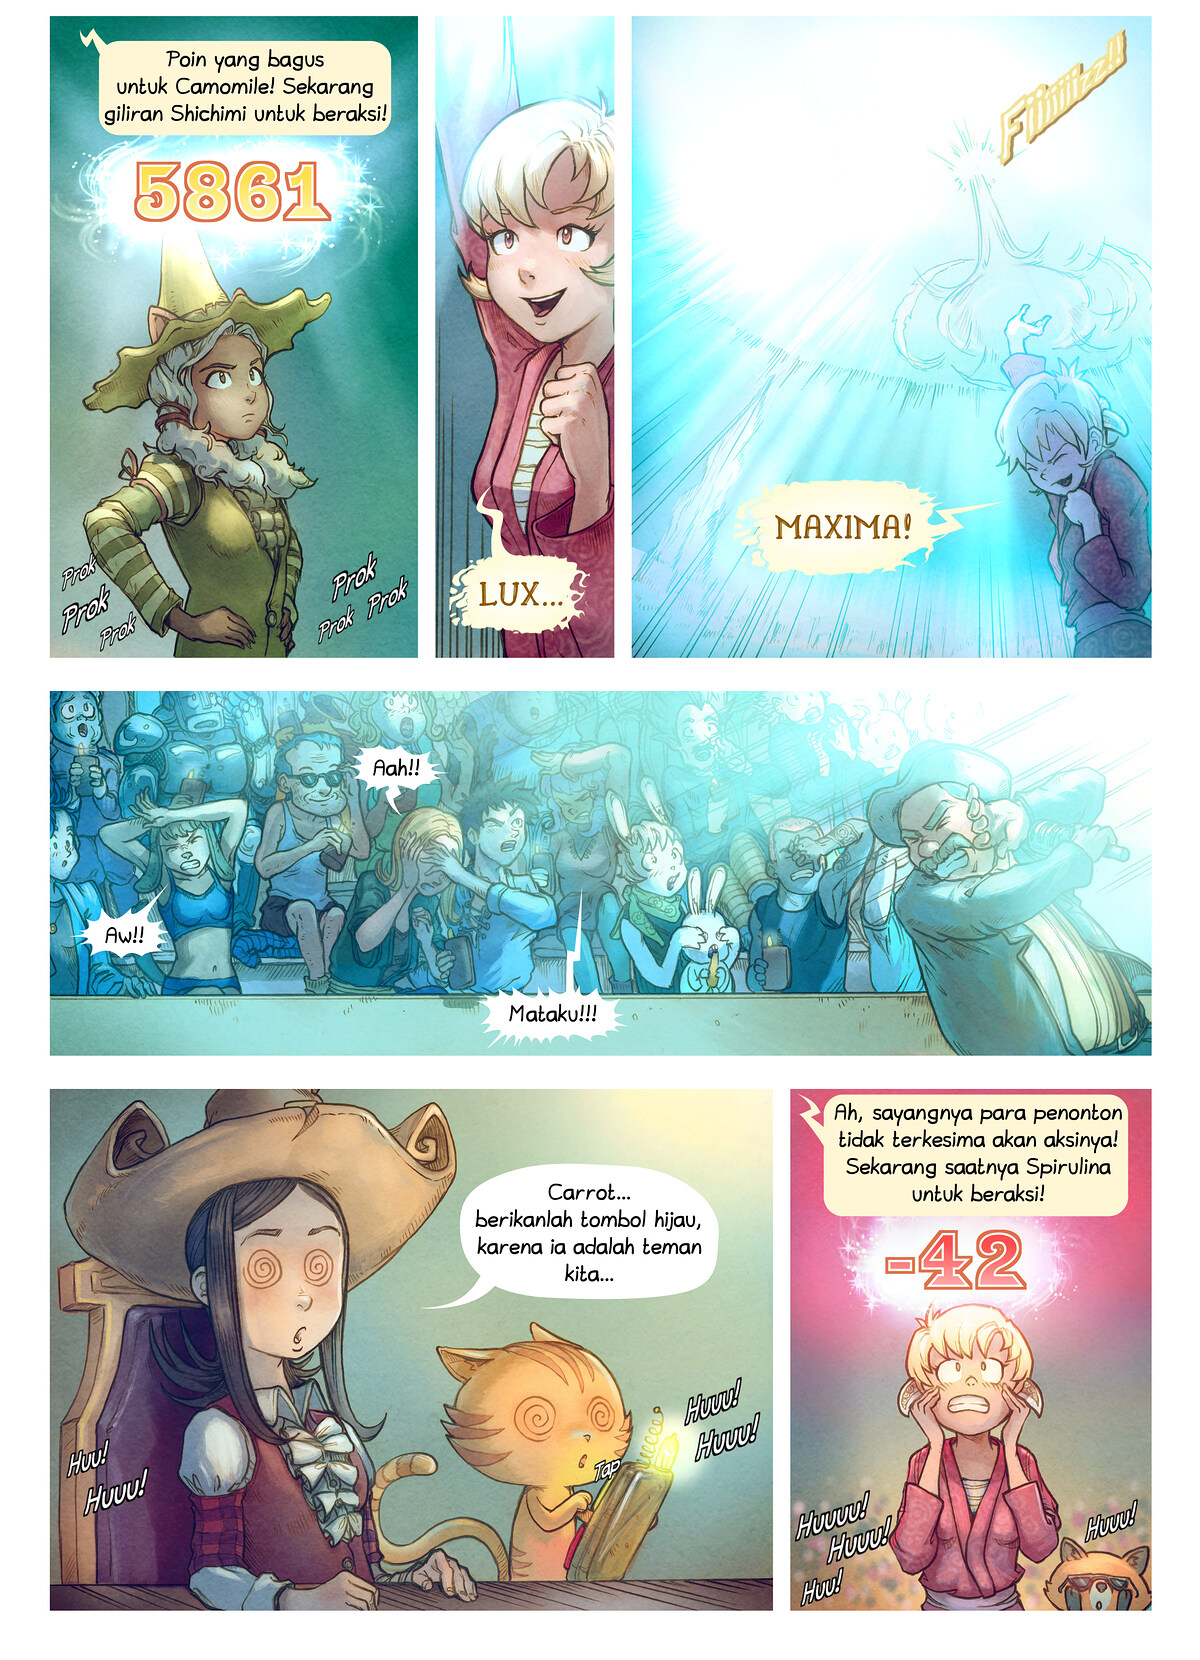 A webcomic page of Pepper&Carrot, episode 22 [id], halaman 6